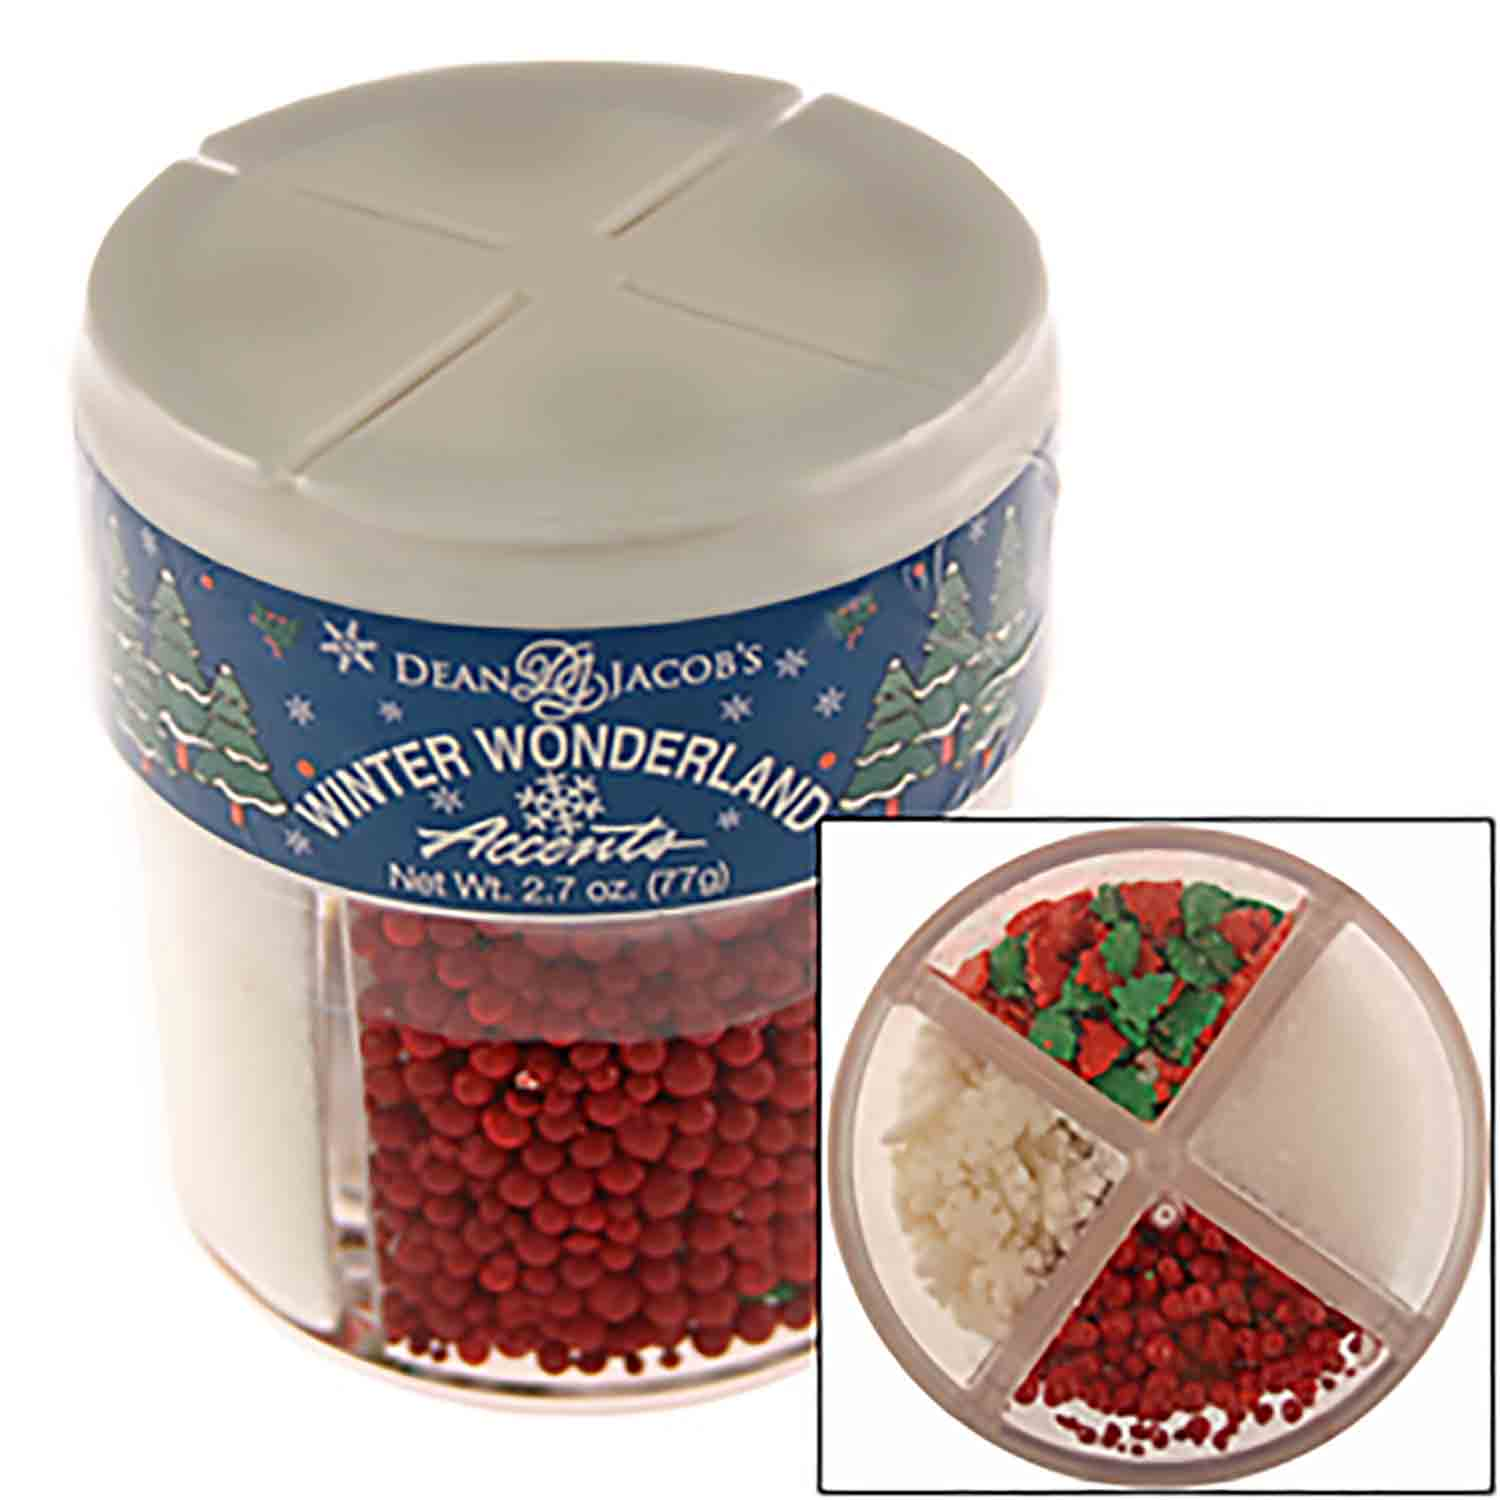 Winter Wonderland Sprinkle Assortment